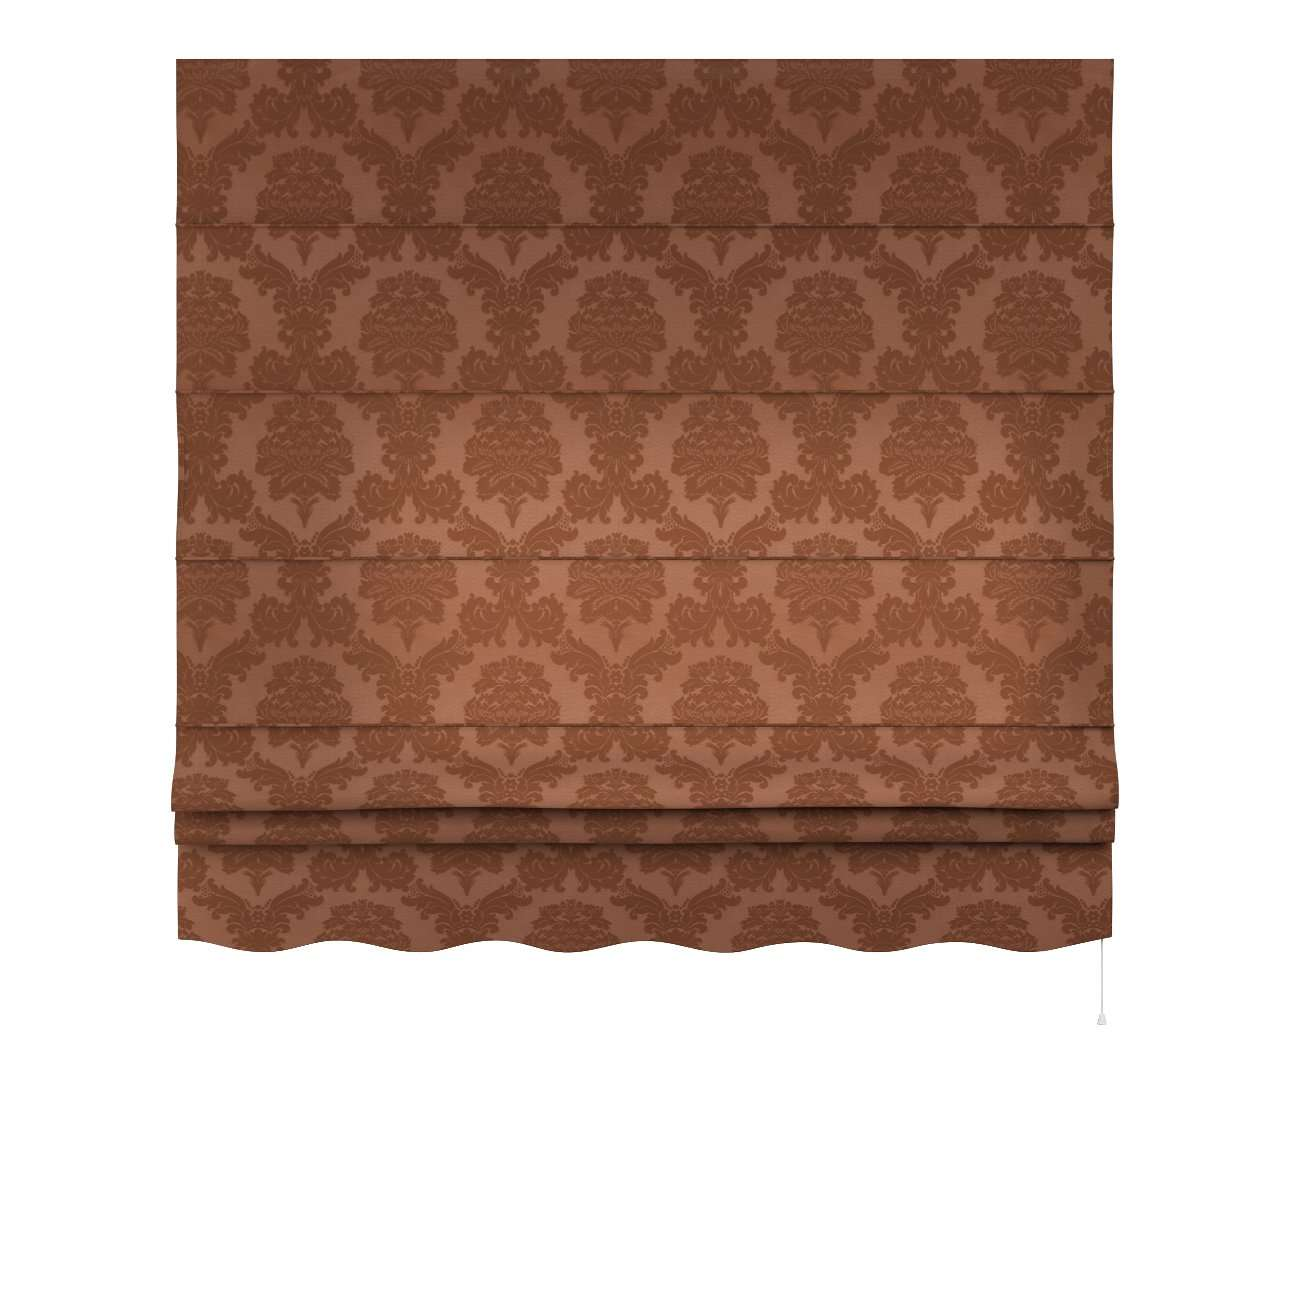 Florence roman blind  80 x 170 cm (31.5 x 67 inch) in collection Damasco, fabric: 613-88